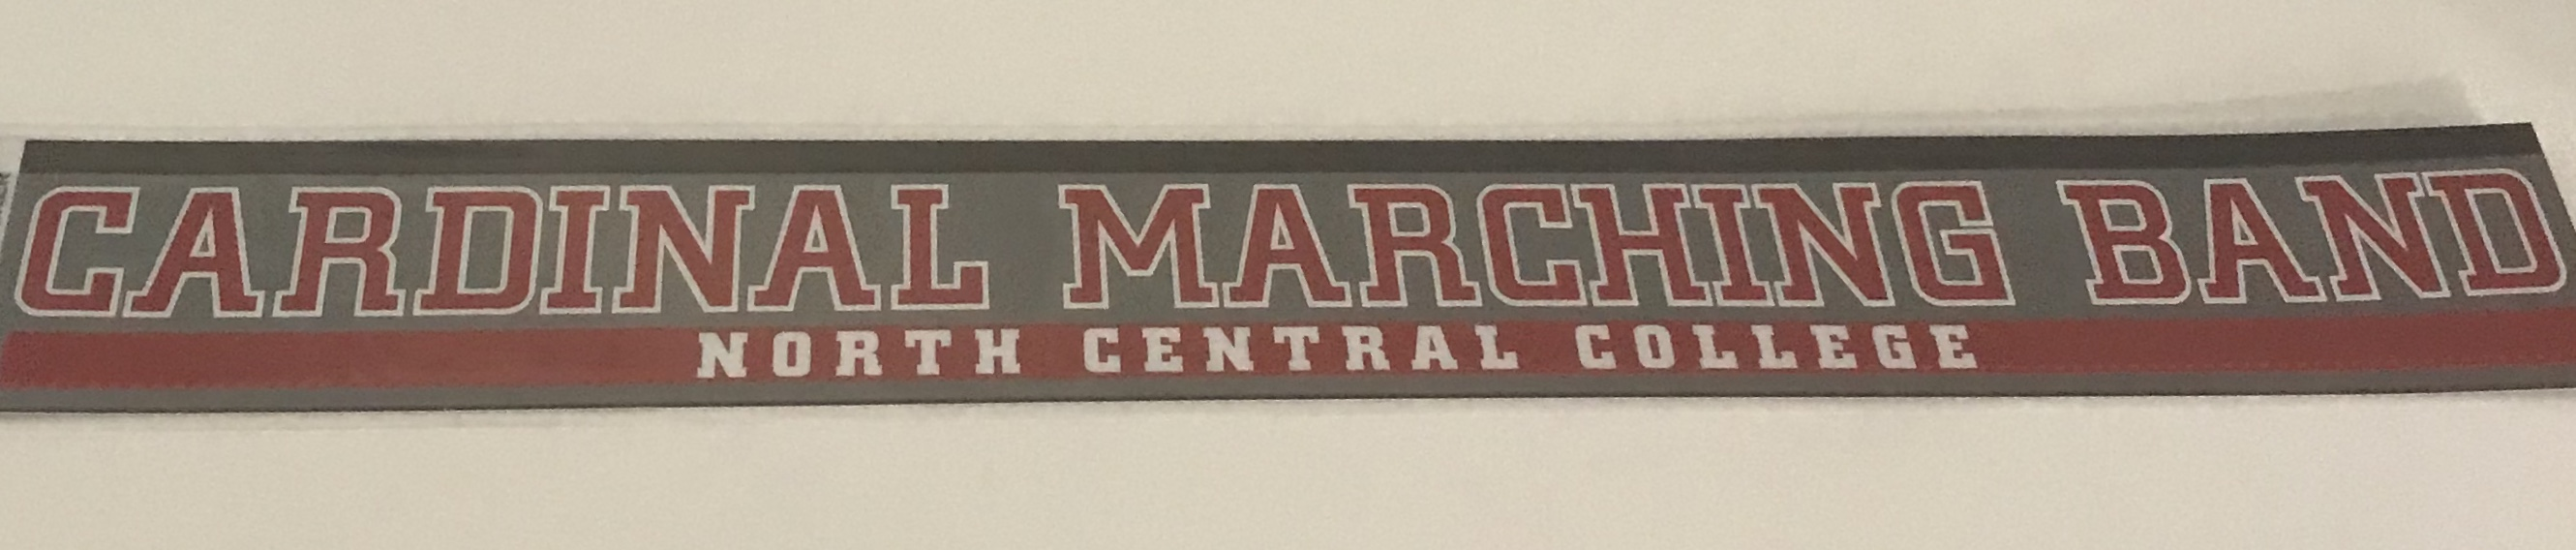 Image for the North Central College Marching Band Decal (ColorShock) product